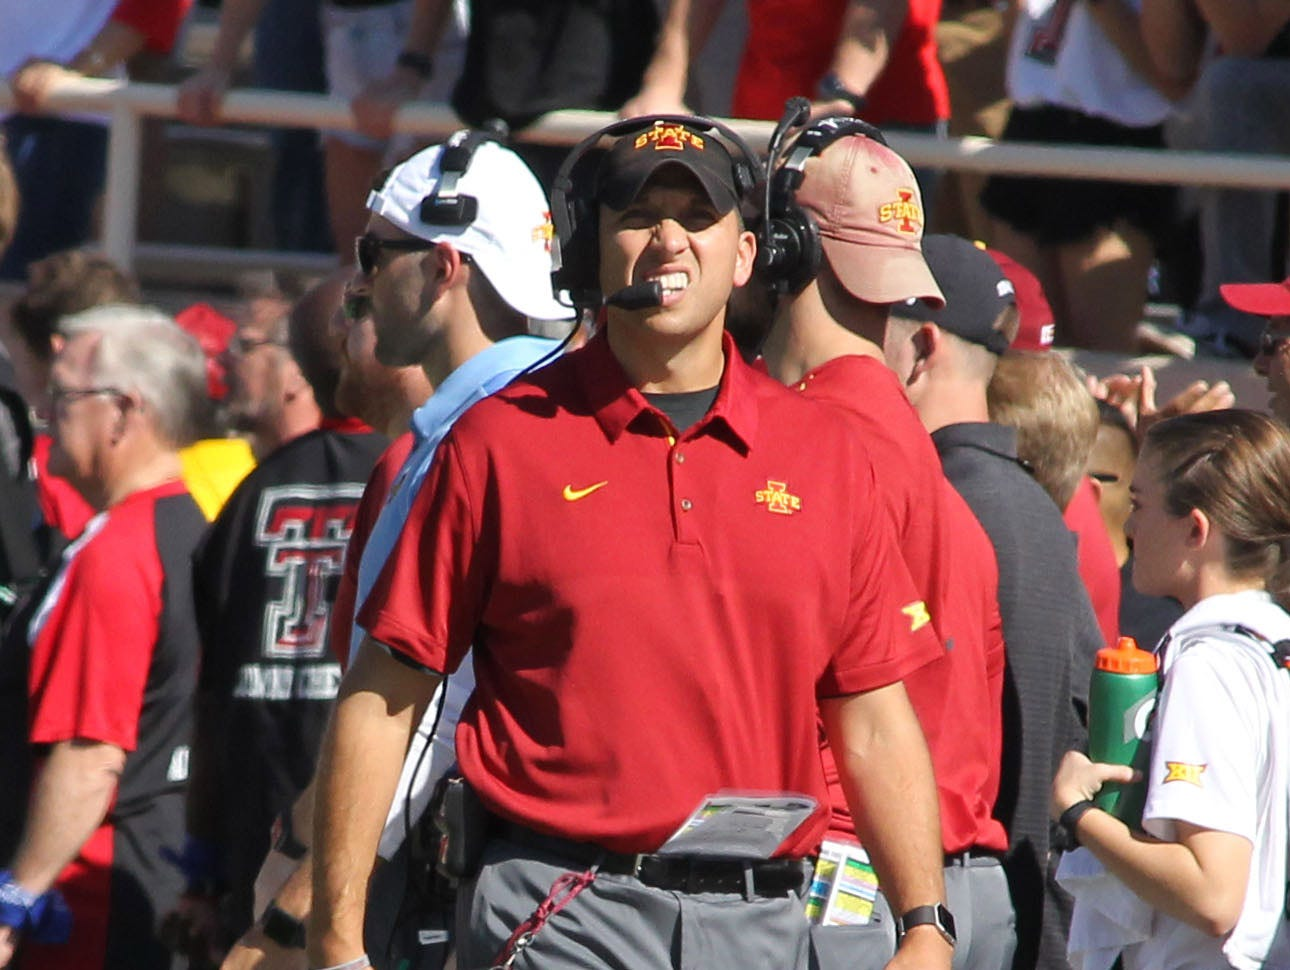 Iowa State Cyclones head coach Matt Campbell on the sidelines during the game against the Texas Tech Red Raiders at Jones AT&T Stadium.